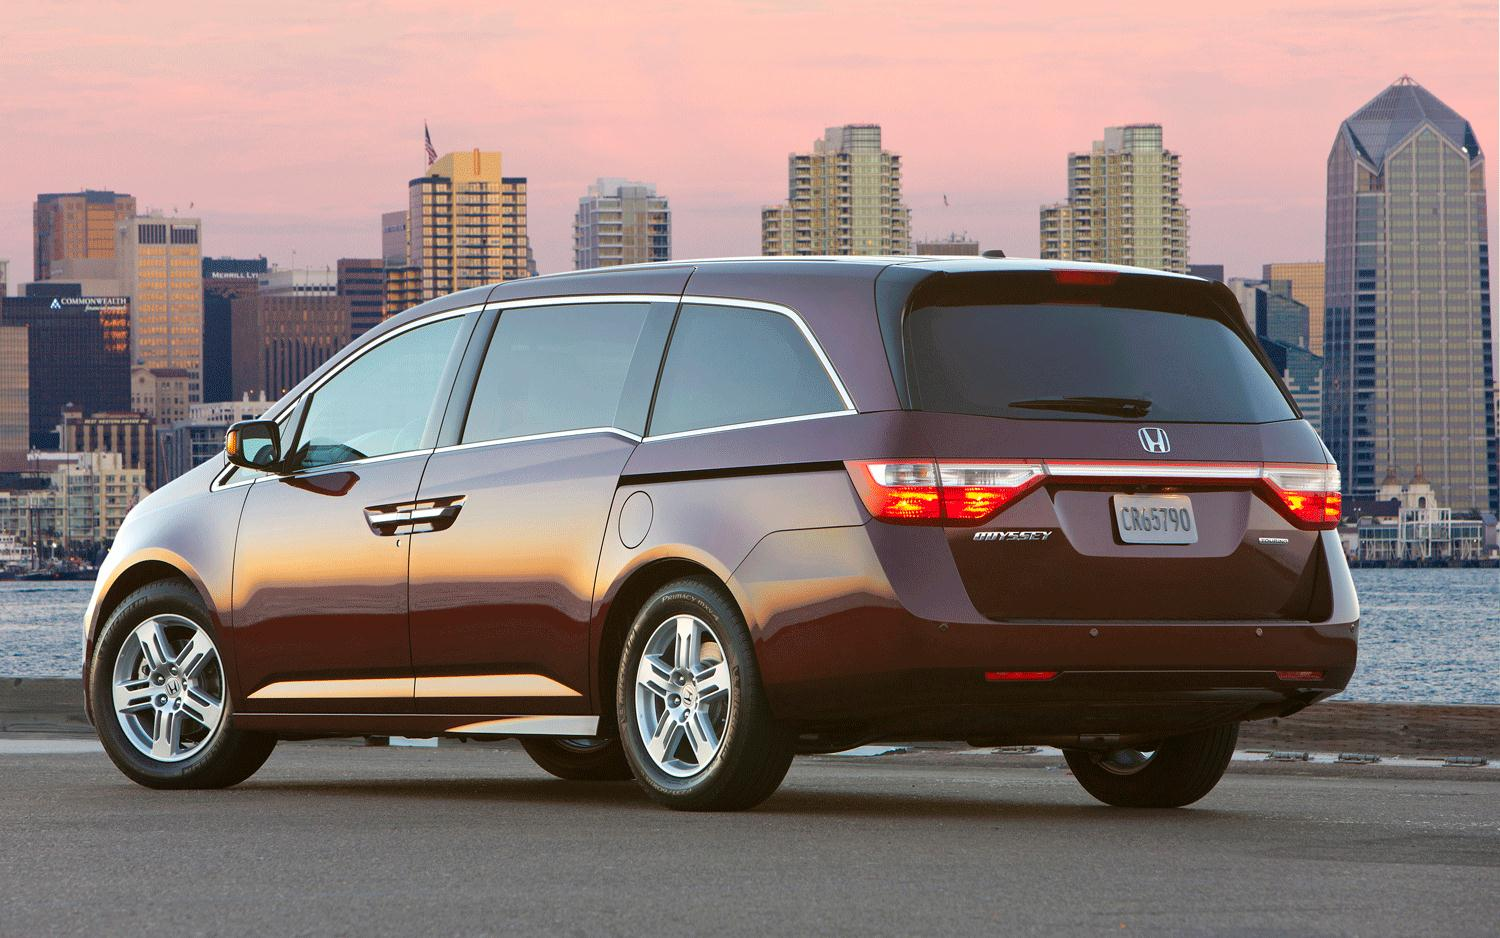 2013 honda odyssey information and photos zombiedrive. Black Bedroom Furniture Sets. Home Design Ideas